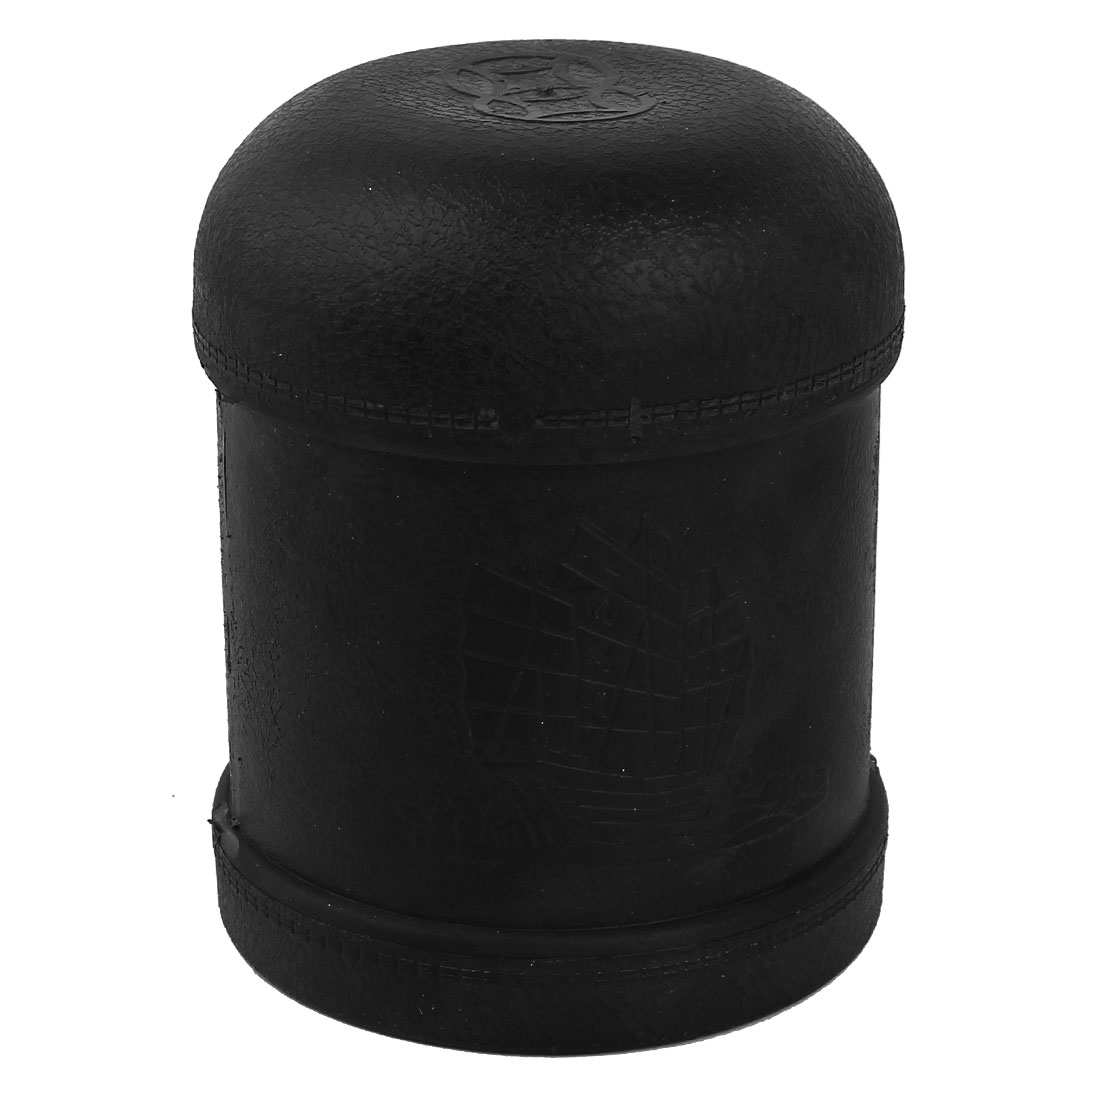 Pub Bar Casino Luck Games Plastic Black Dice Shaker Cup